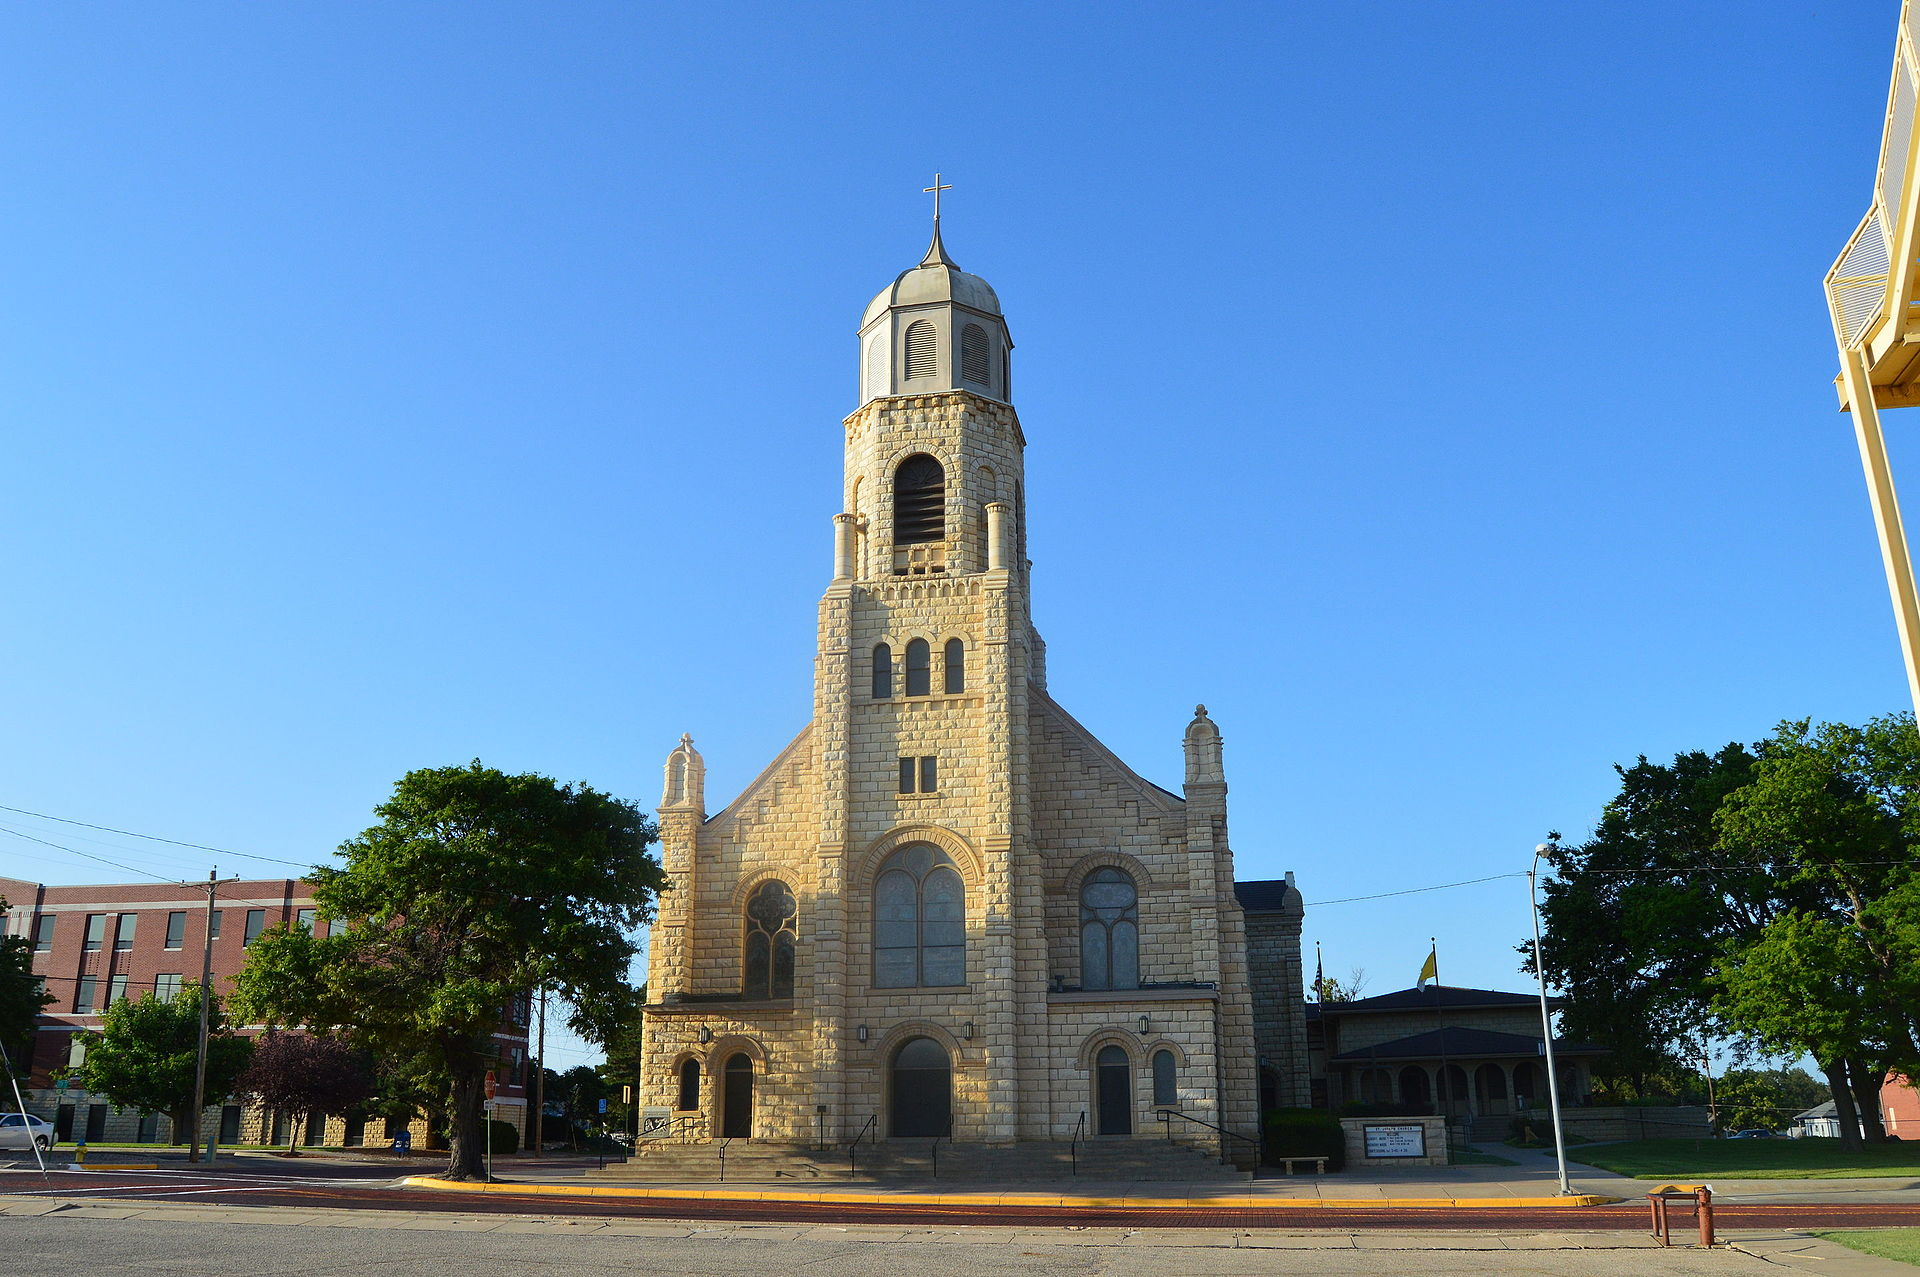 St. Joseph's Church was built in 1904 in the Romanesque Revival style.